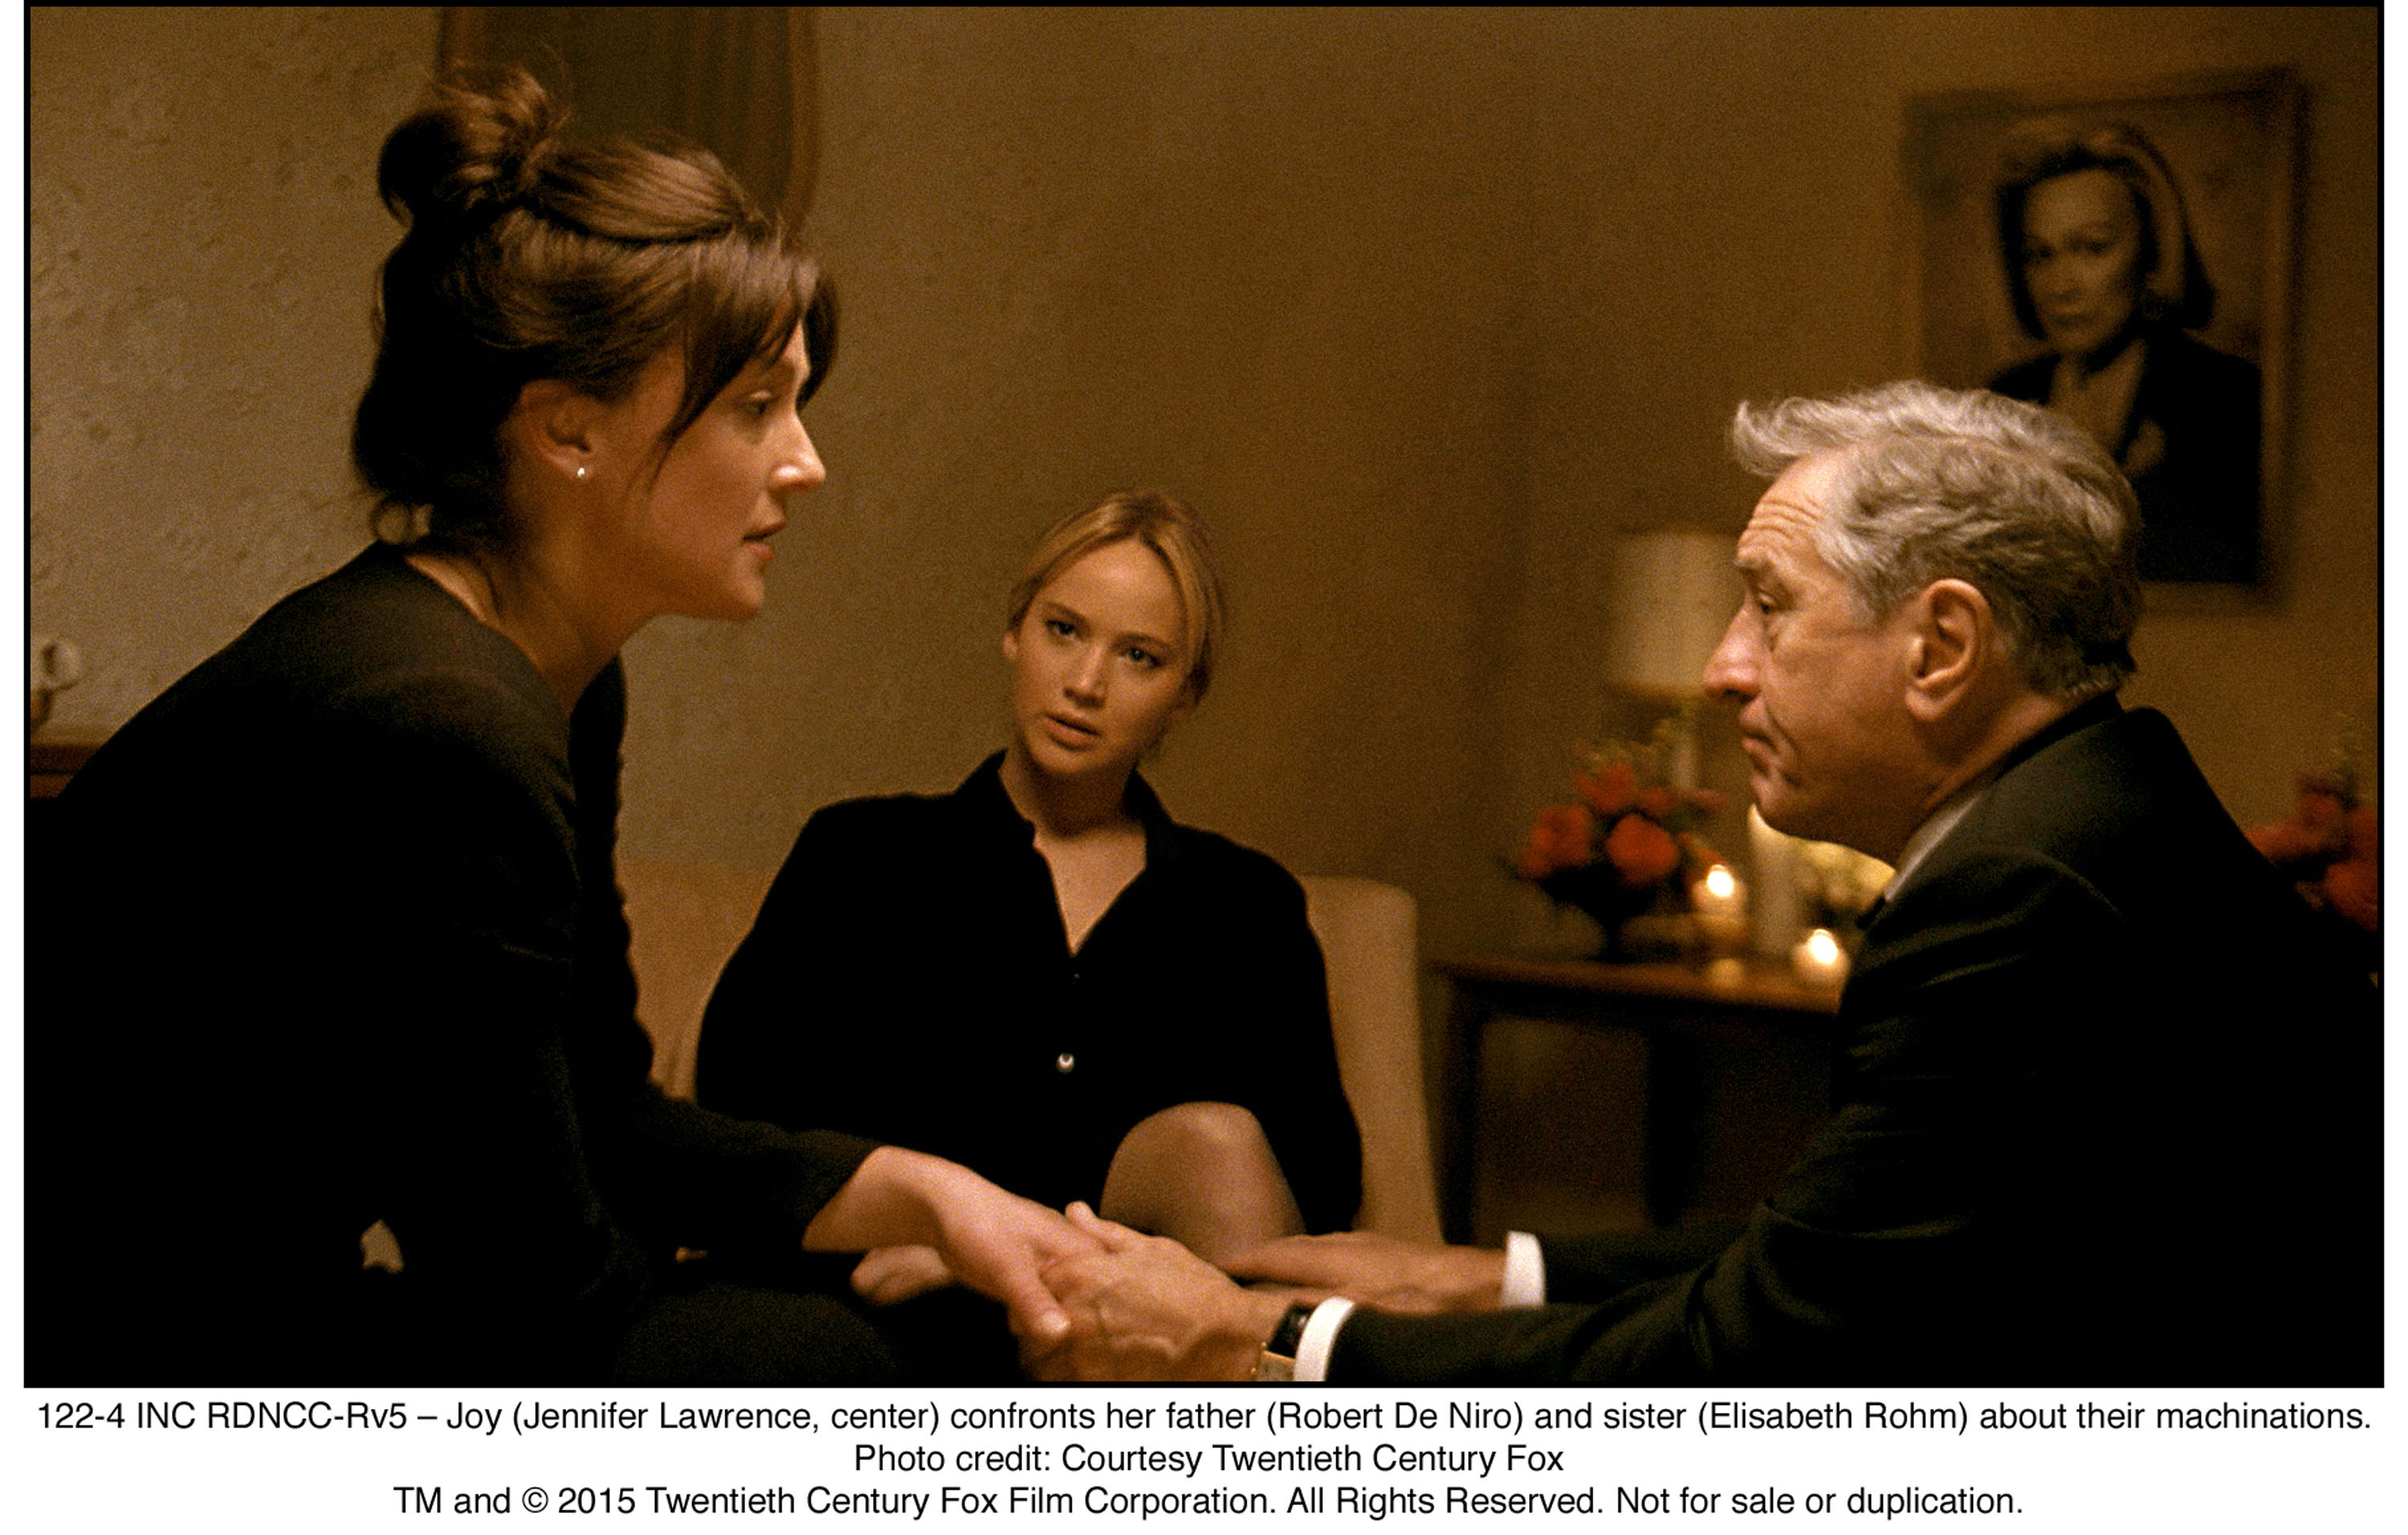 122-4 INC RDNCC-Rv5 – Joy (Jennifer Lawrence, center) confronts her father (Robert De Niro) and sister (Elisabeth Rohm) about their machinations.